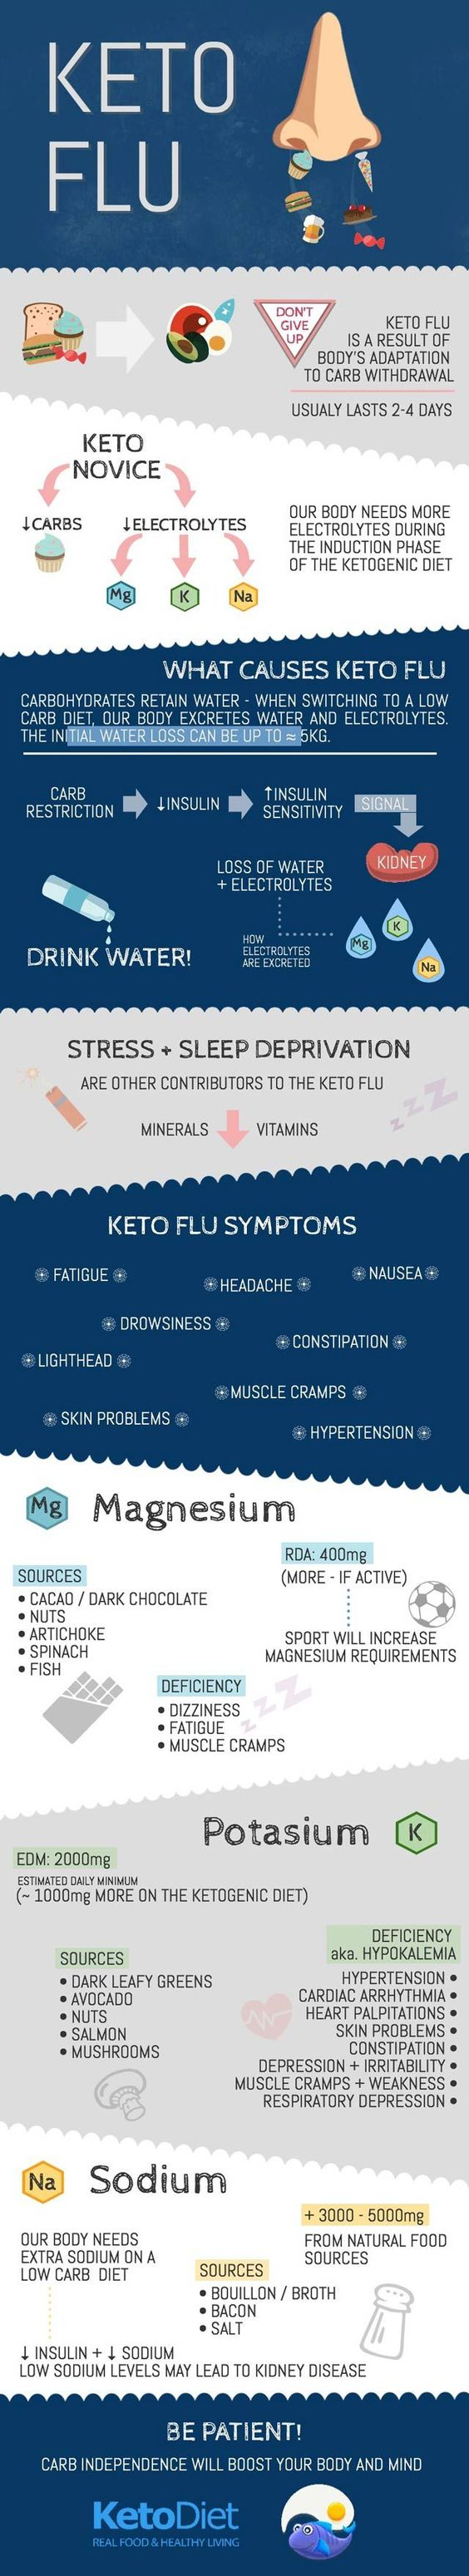 The keto flu. Get into ketosis in 60 minutes with Keto//OS ...